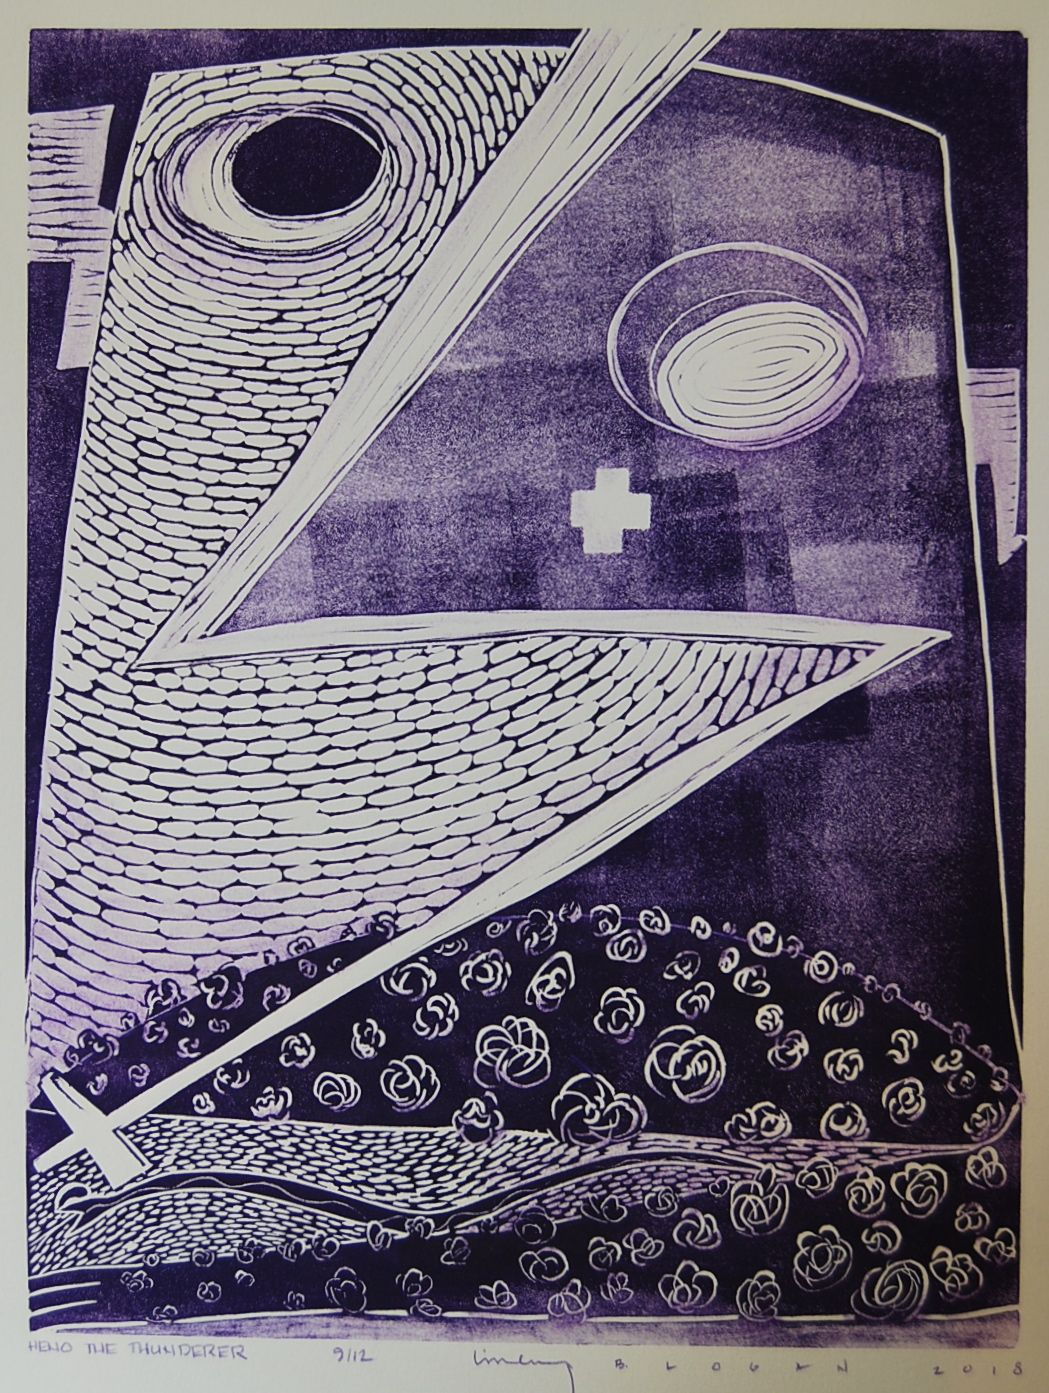 Photo of a work on paper by Native artist Linley B. Logan.